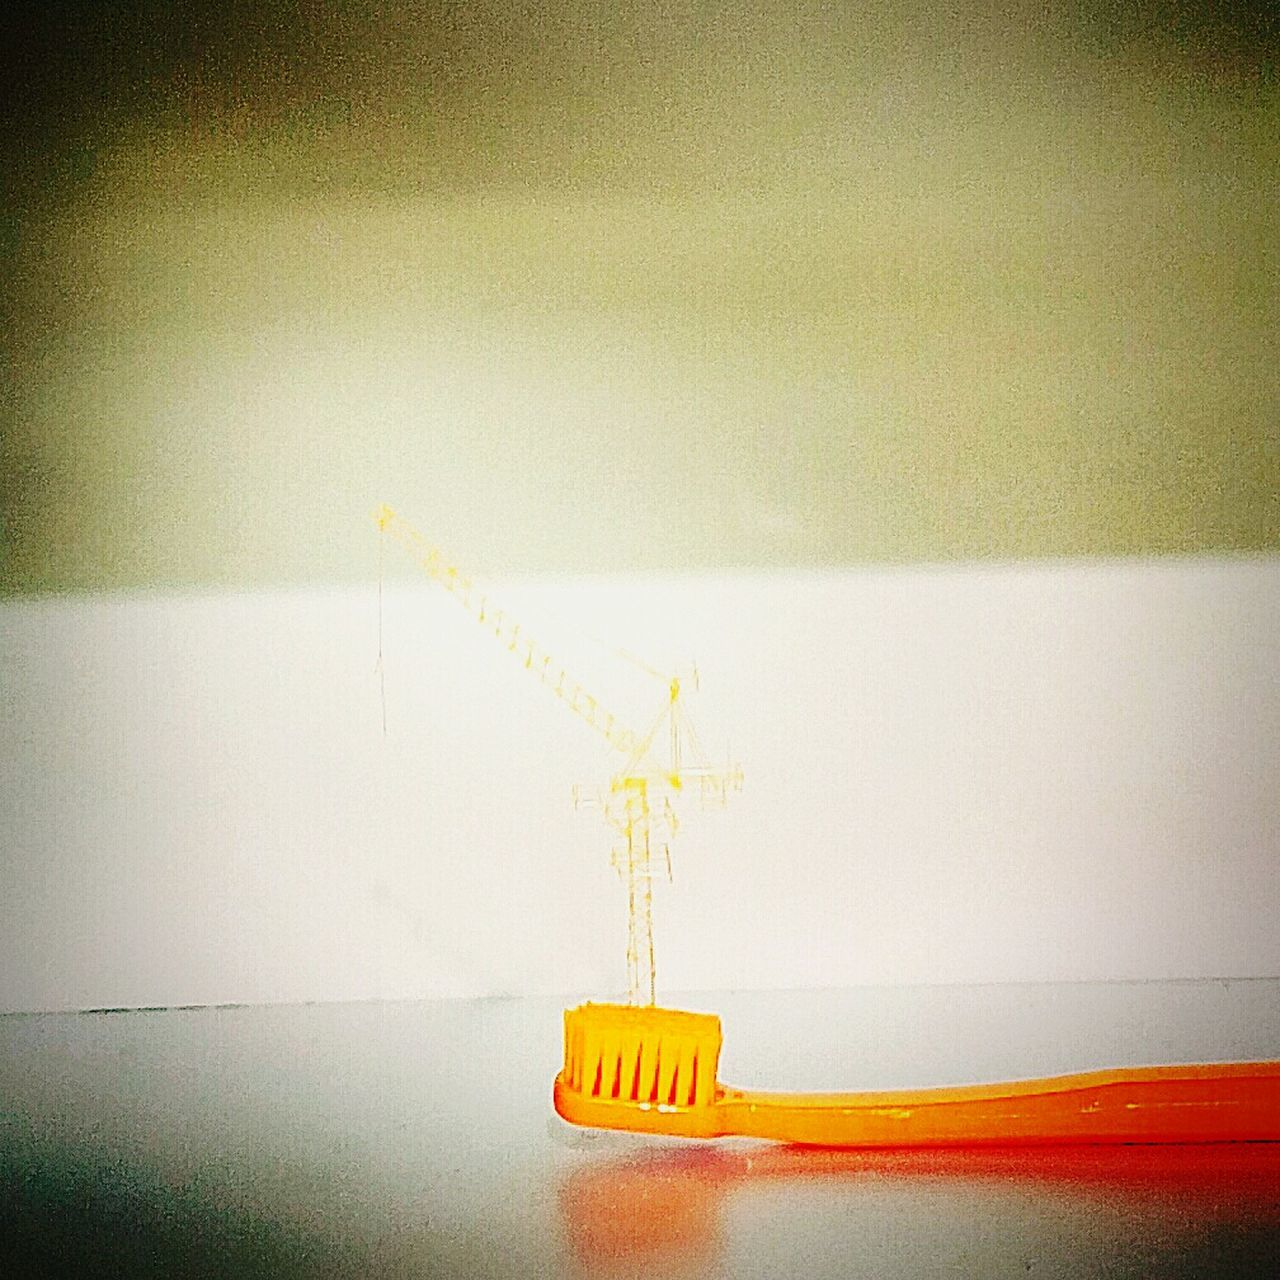 color Calaful Toothbrush Japan kyoto art center toothbrush bristles makes crane Funnysummer Art